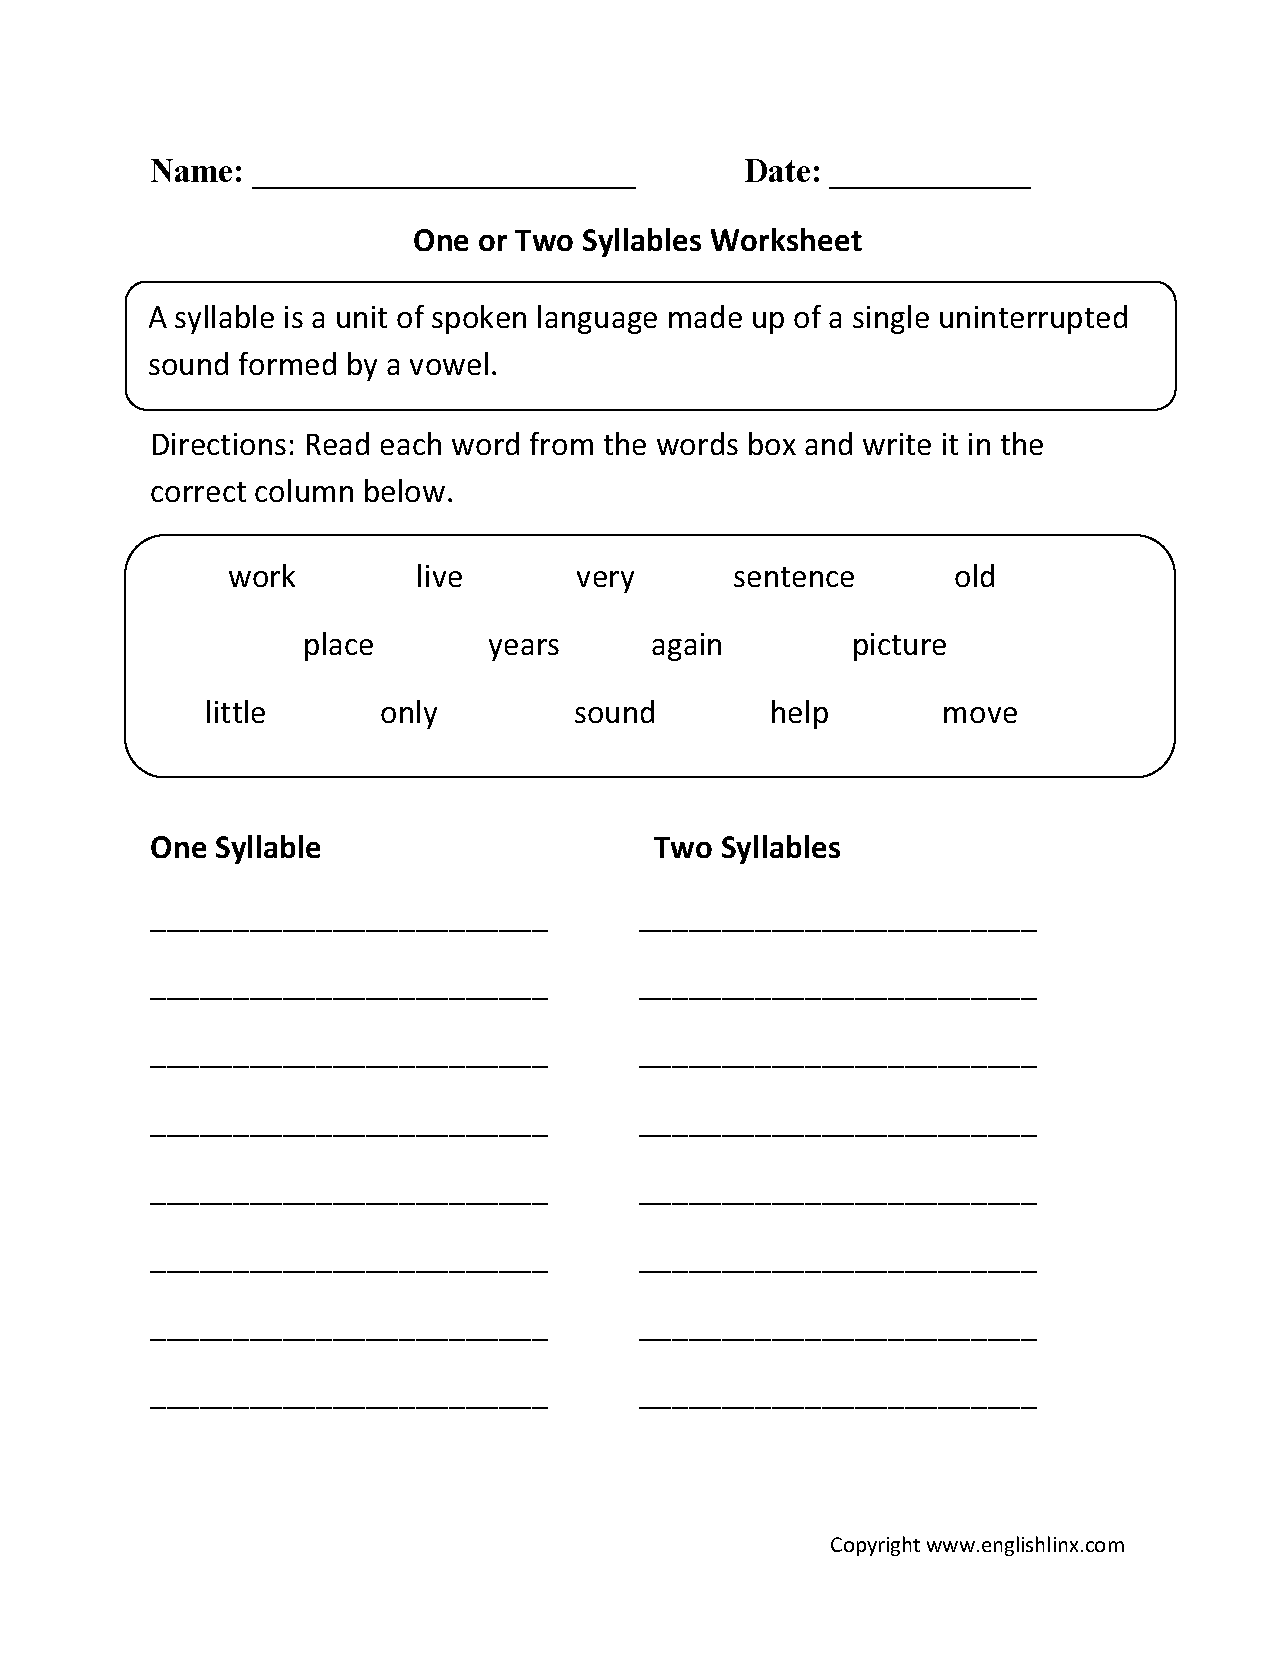 Aldiablosus  Wonderful Englishlinxcom  Syllables Worksheets With Engaging Syllables Worksheets With Awesome Algebraic Expressions Worksheets Th Grade Also Find The Nouns Worksheet In Addition Worksheets Place Value And Vocabulary Worksheet Ideas As Well As Weather Chart Worksheet Additionally Sight Word Practice Worksheets Free From Englishlinxcom With Aldiablosus  Engaging Englishlinxcom  Syllables Worksheets With Awesome Syllables Worksheets And Wonderful Algebraic Expressions Worksheets Th Grade Also Find The Nouns Worksheet In Addition Worksheets Place Value From Englishlinxcom